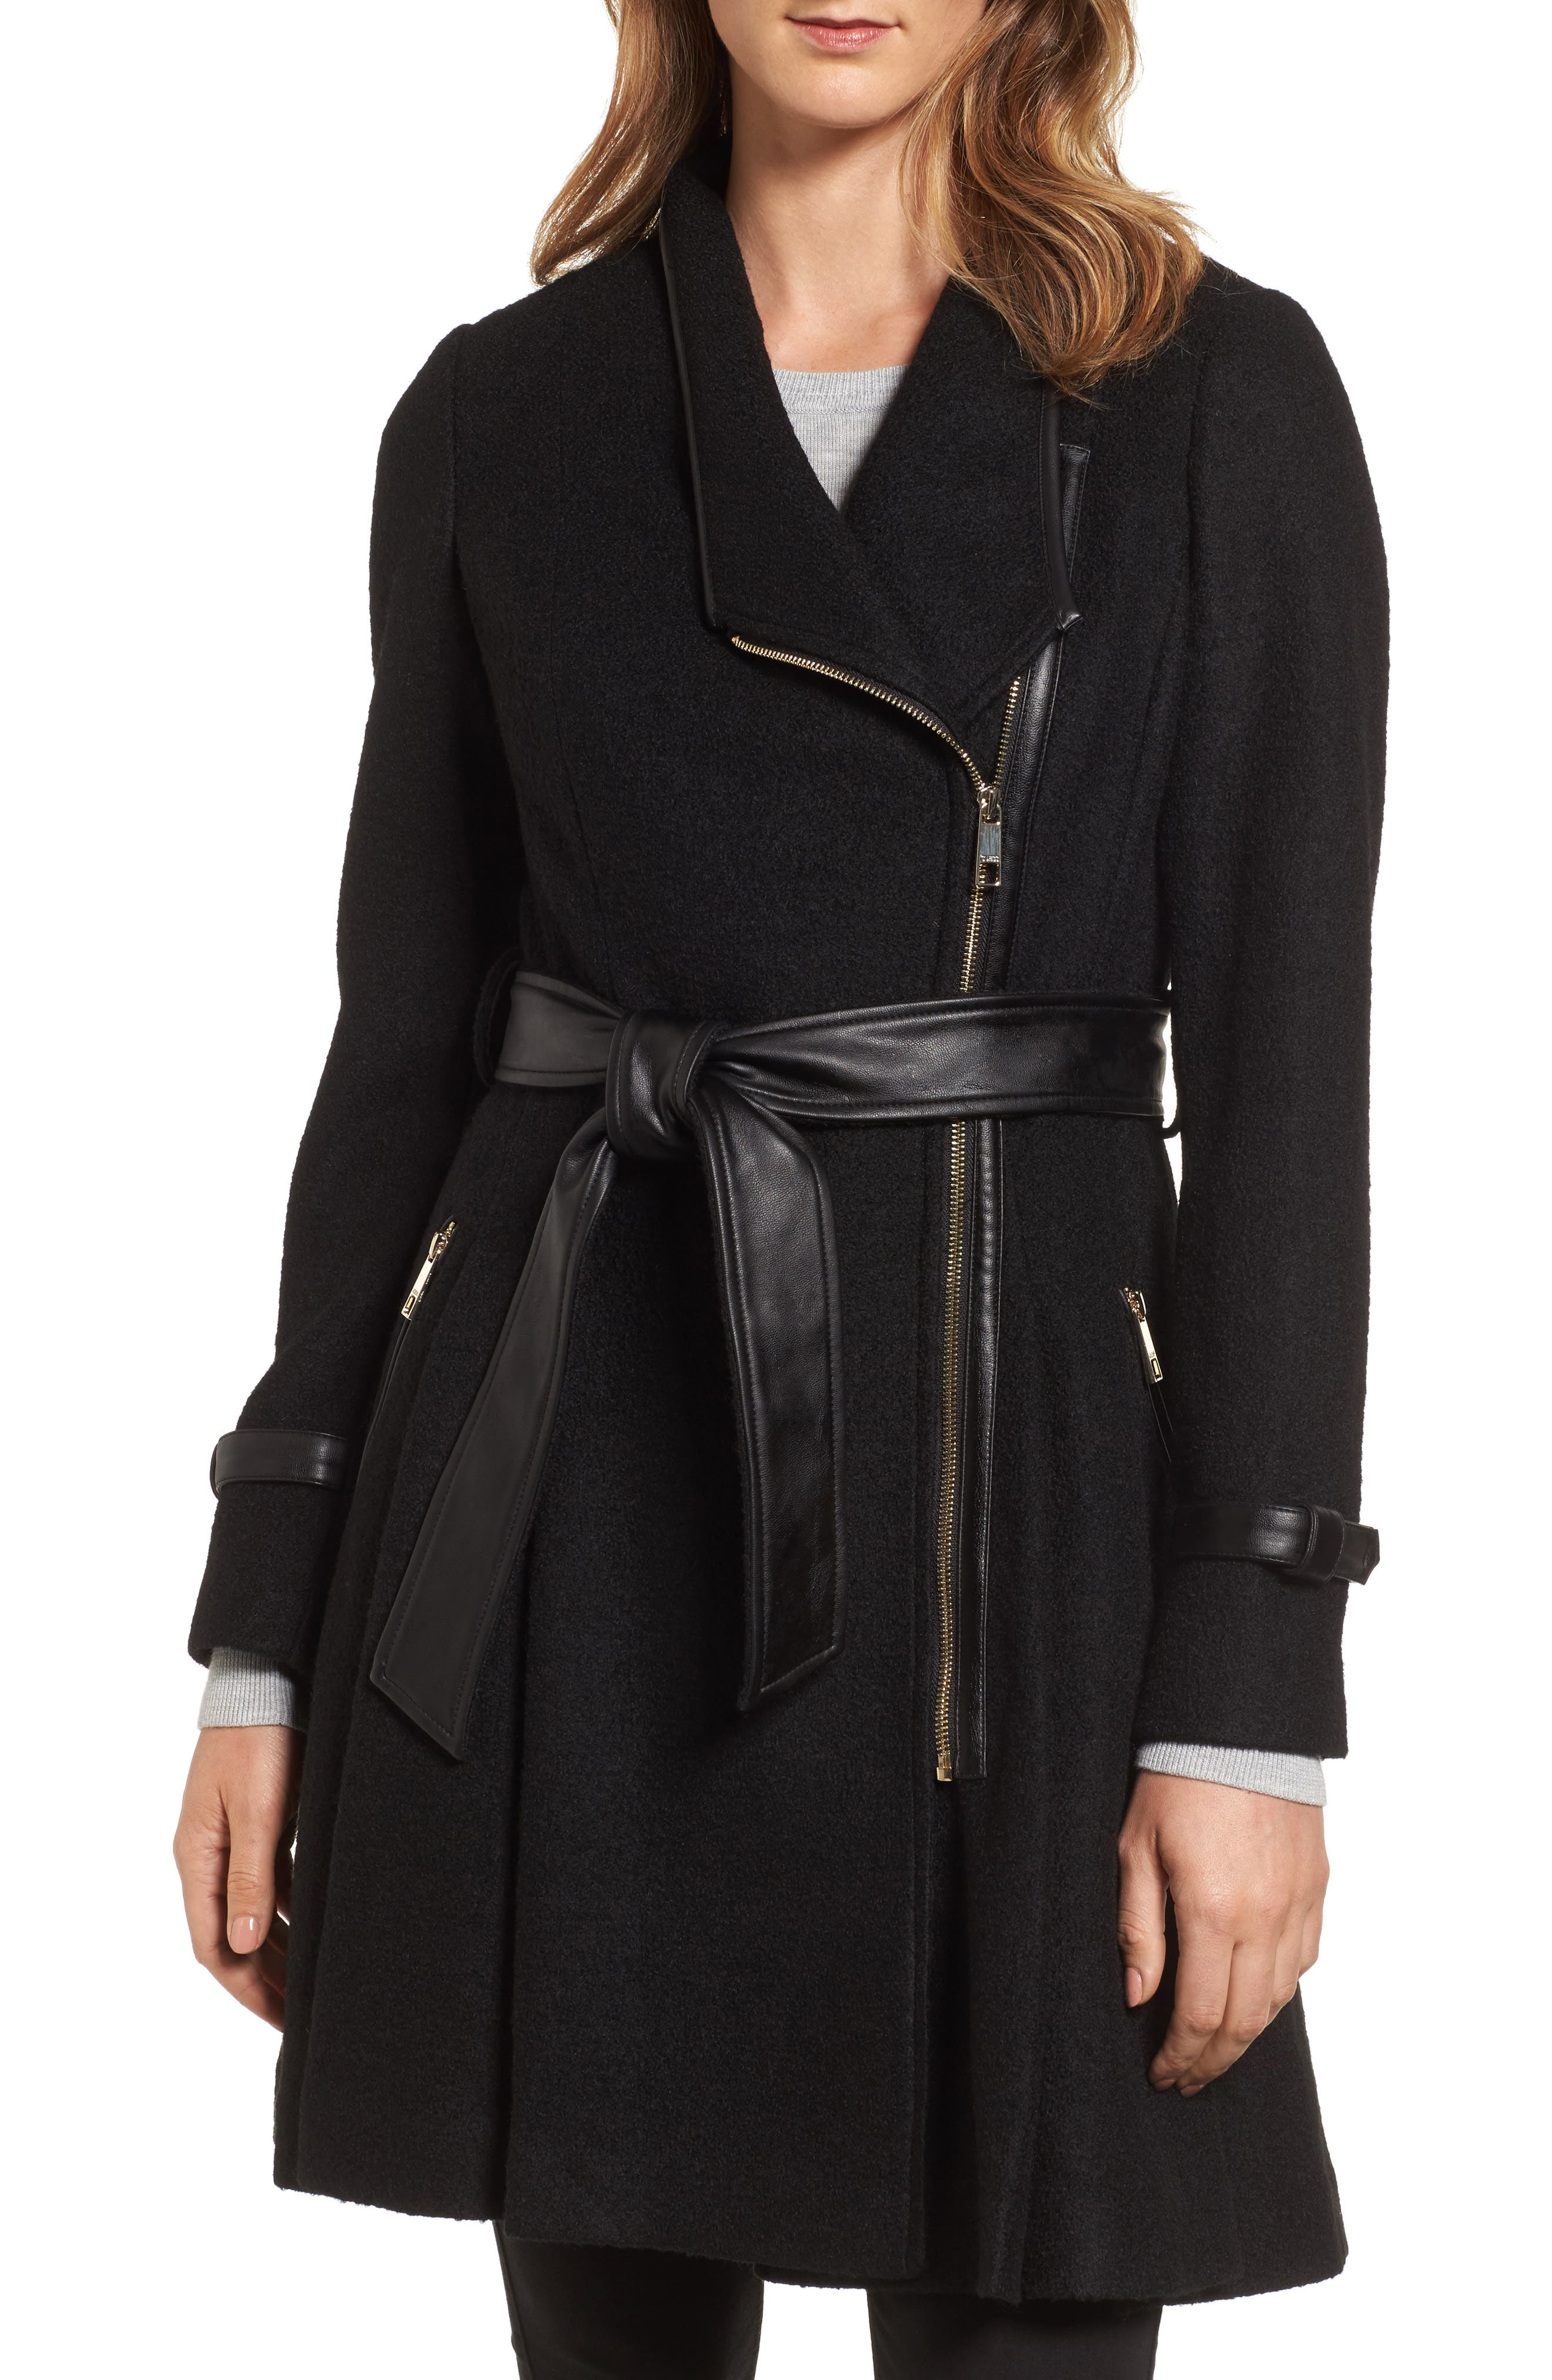 Belted Boiled Wool Blend Coat,                             Main thumbnail 1, color,                             001